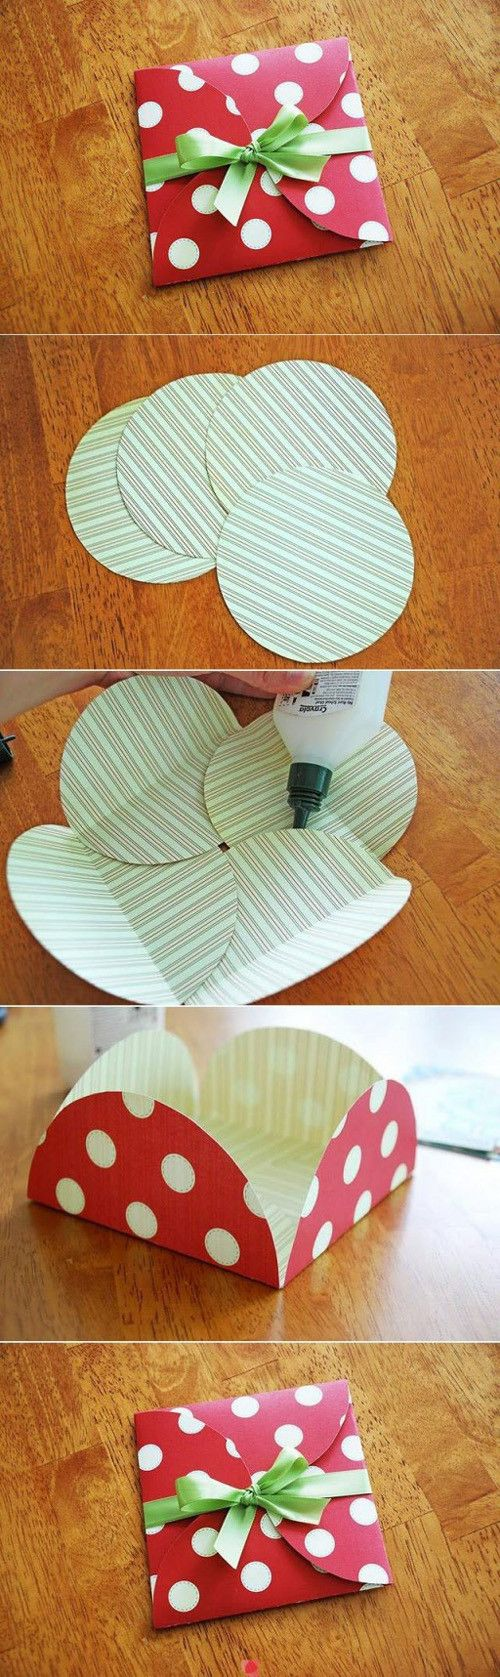 DIY beautiful gift envelope #ahaishopping